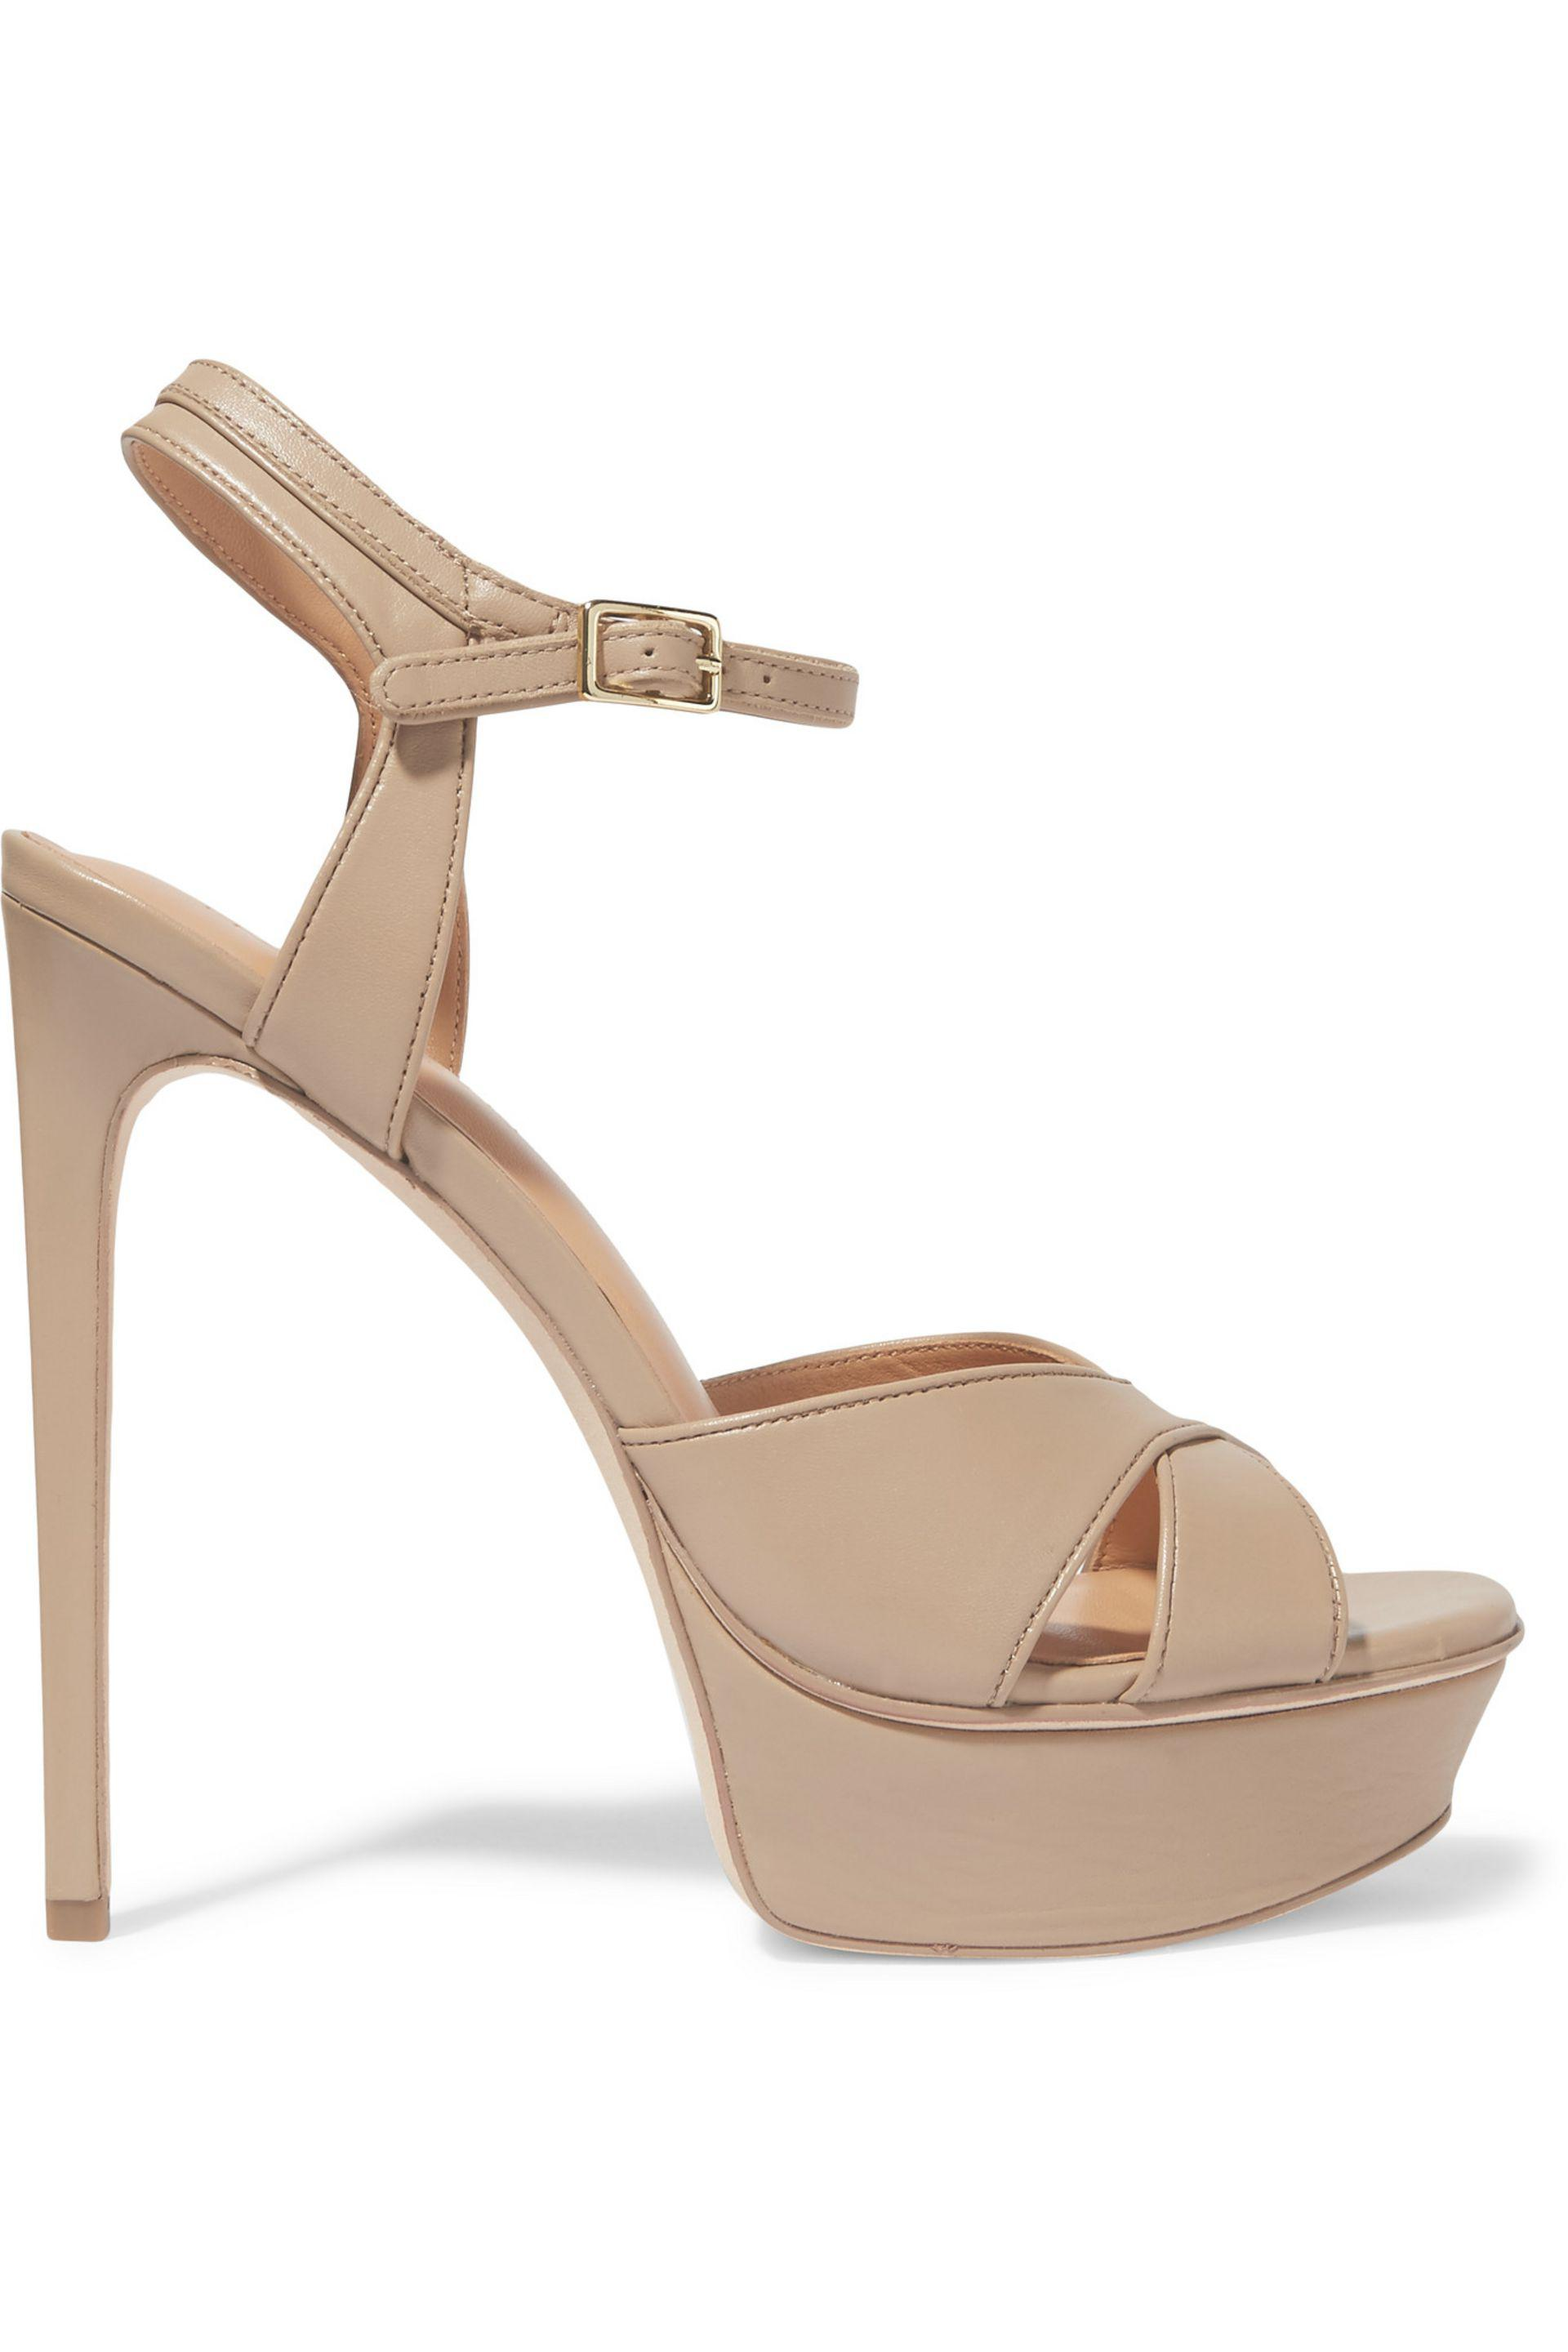 Halston Heritage Cutout Platform Sandals cheap prices authentic under $60 cheap online quality free shipping low price hot sale Cheapest cheap price KTKDZR6P